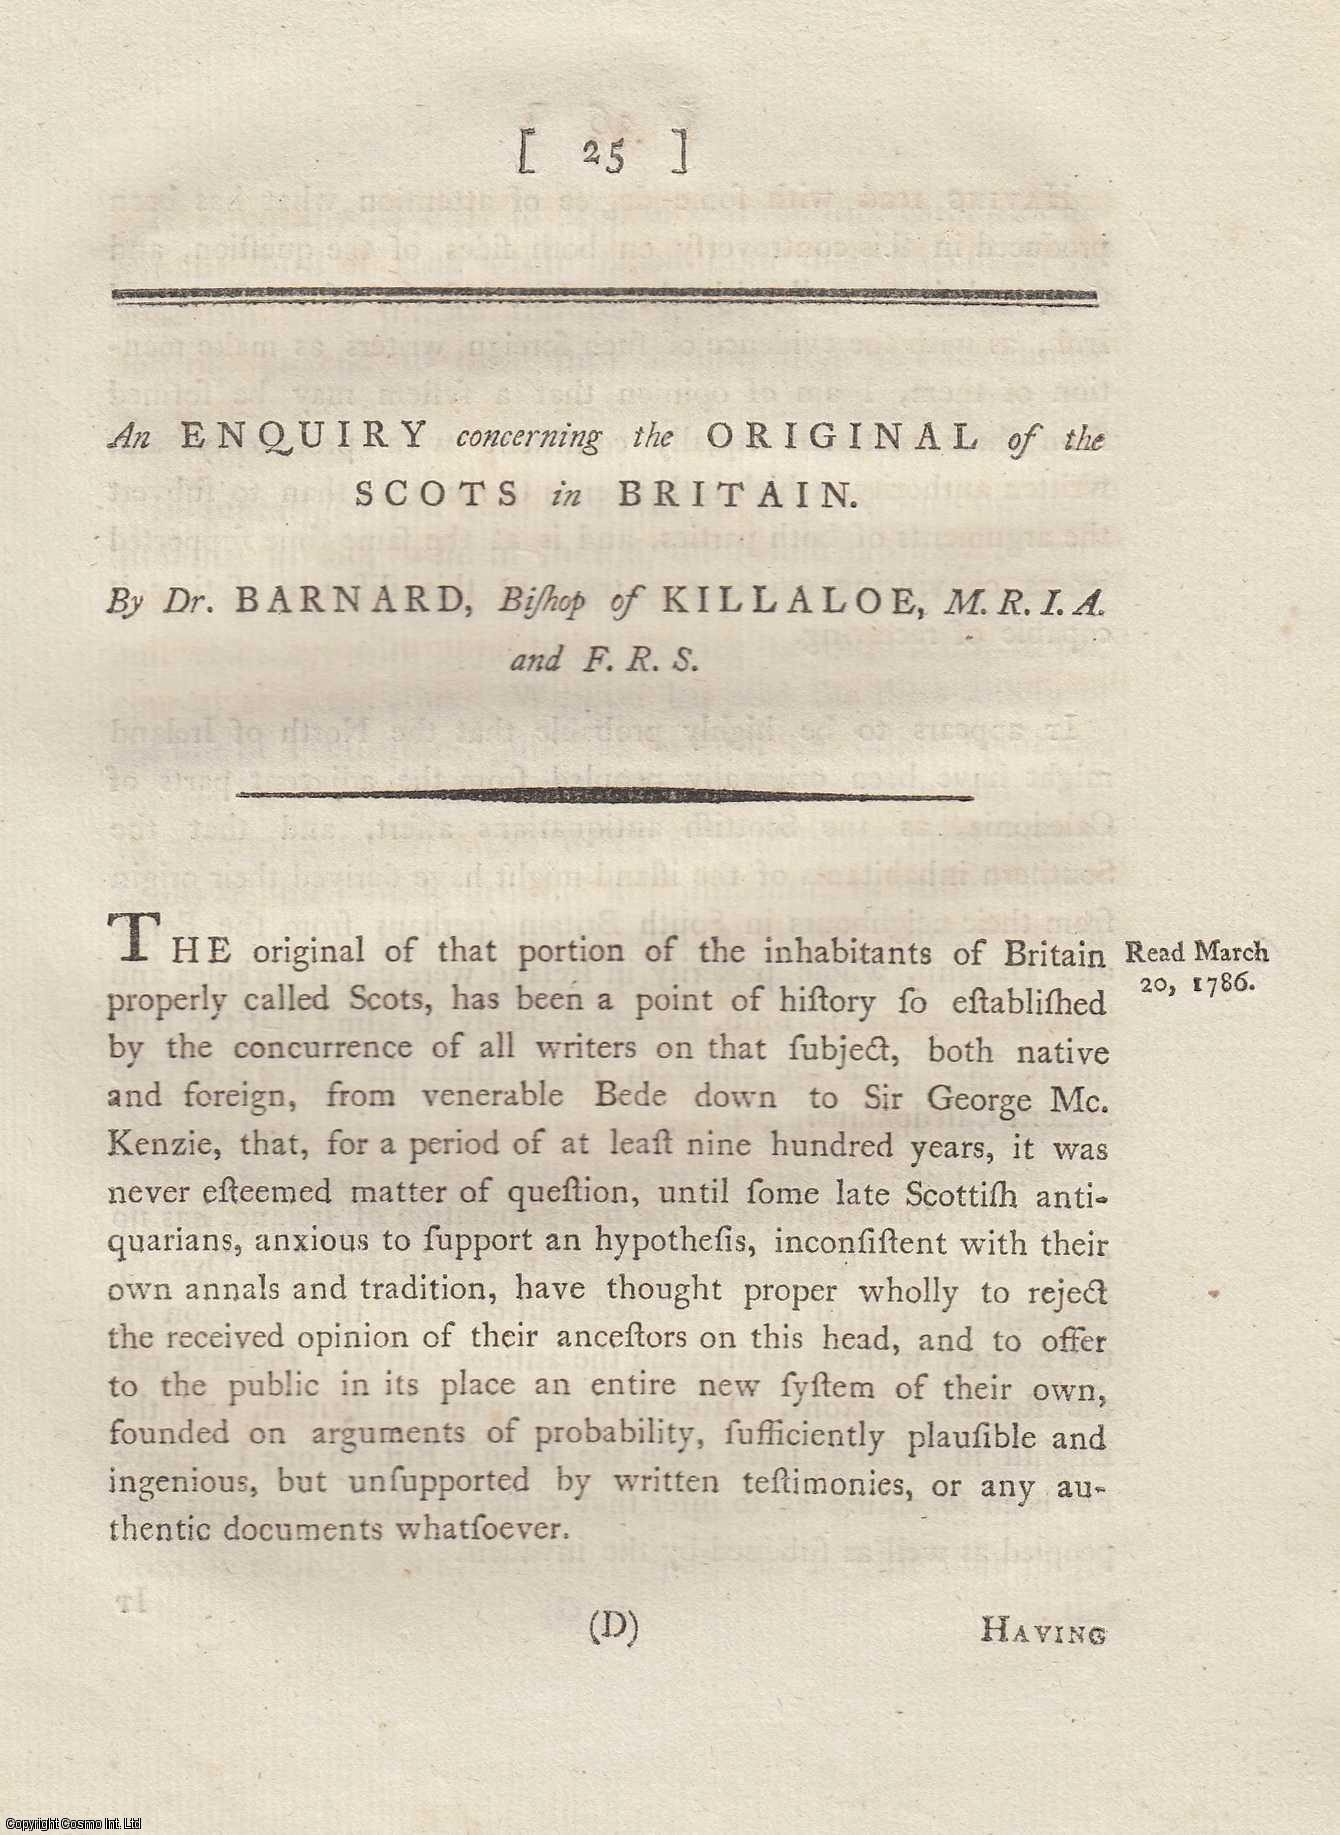 An Enquiry concerning the Original of the Scots in Britain. From Transactions of the Royal Irish Academy., Barnard, Dr.  Bishop of Killaloe.